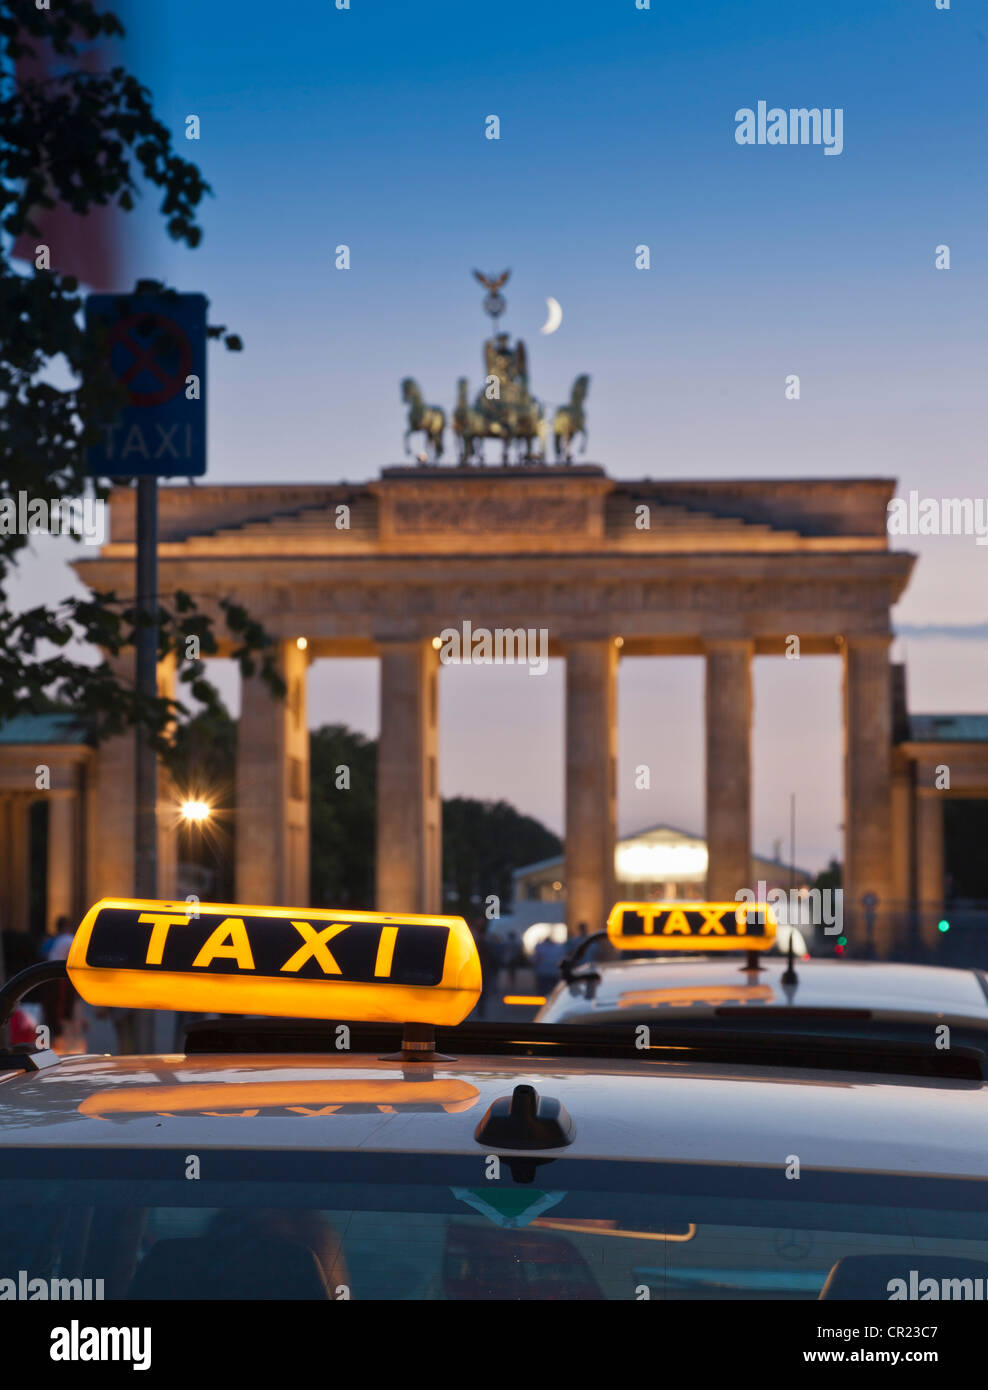 Close up of taxi signs on cabs - Stock Image